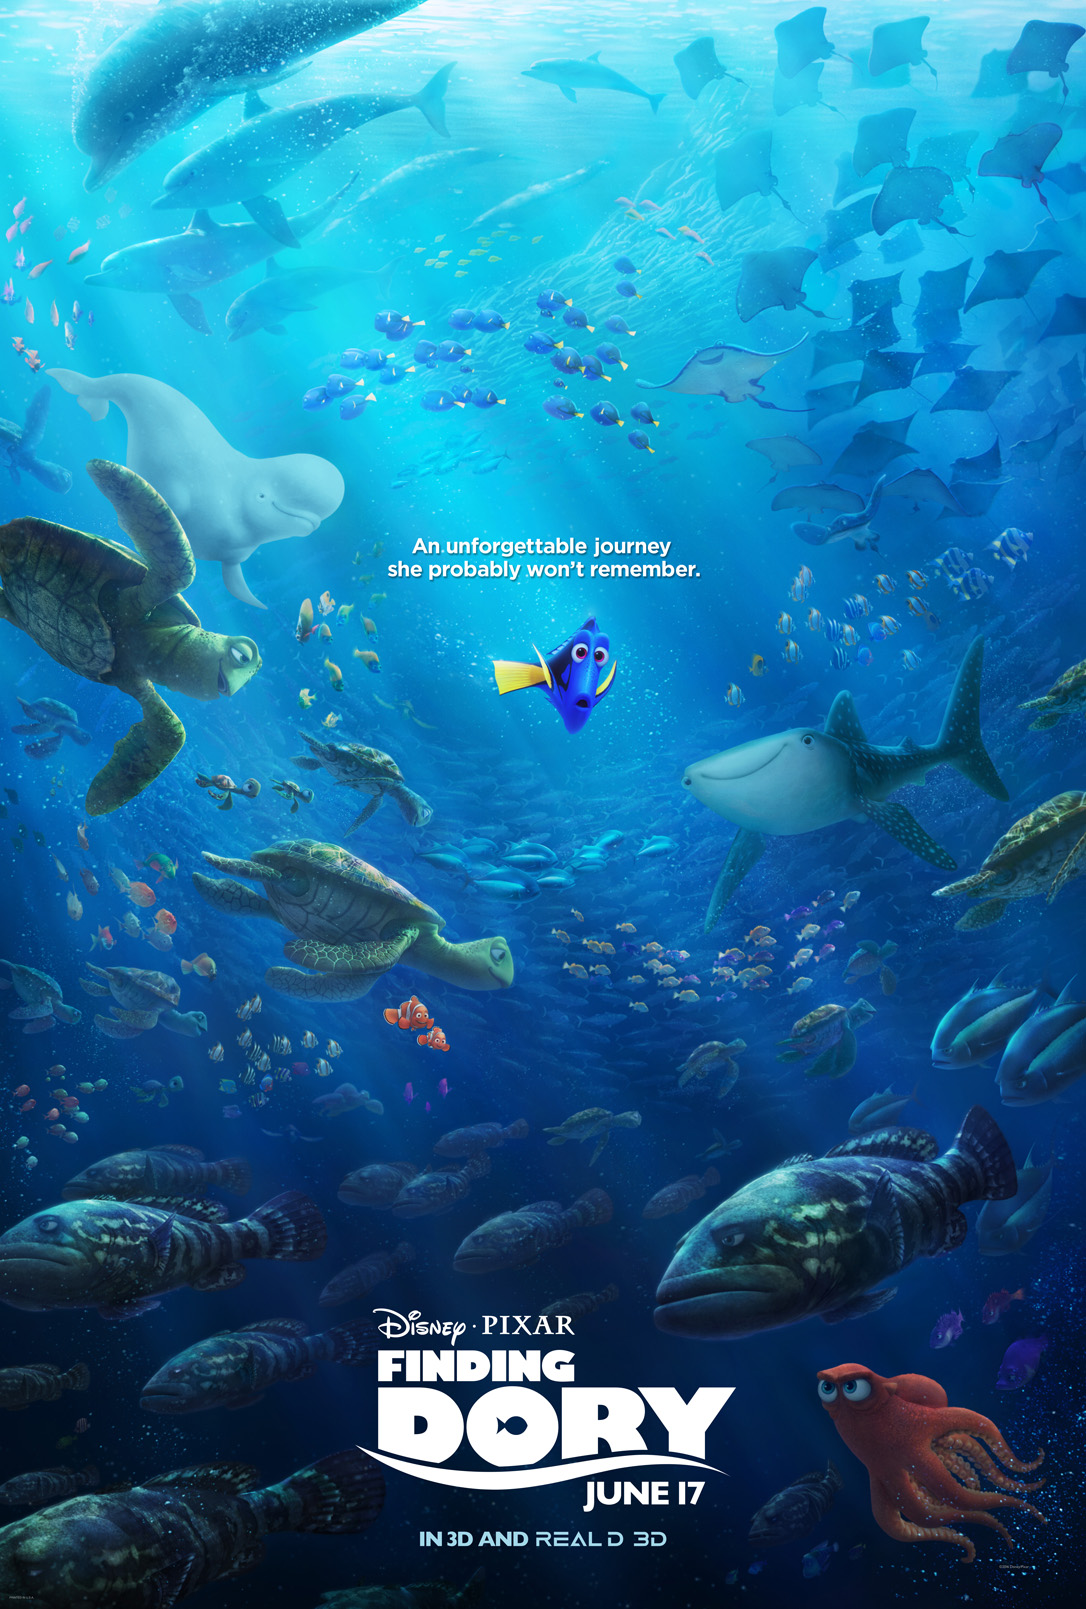 New Trailer for Disney•Pixar's Finding Dory #FindingDory